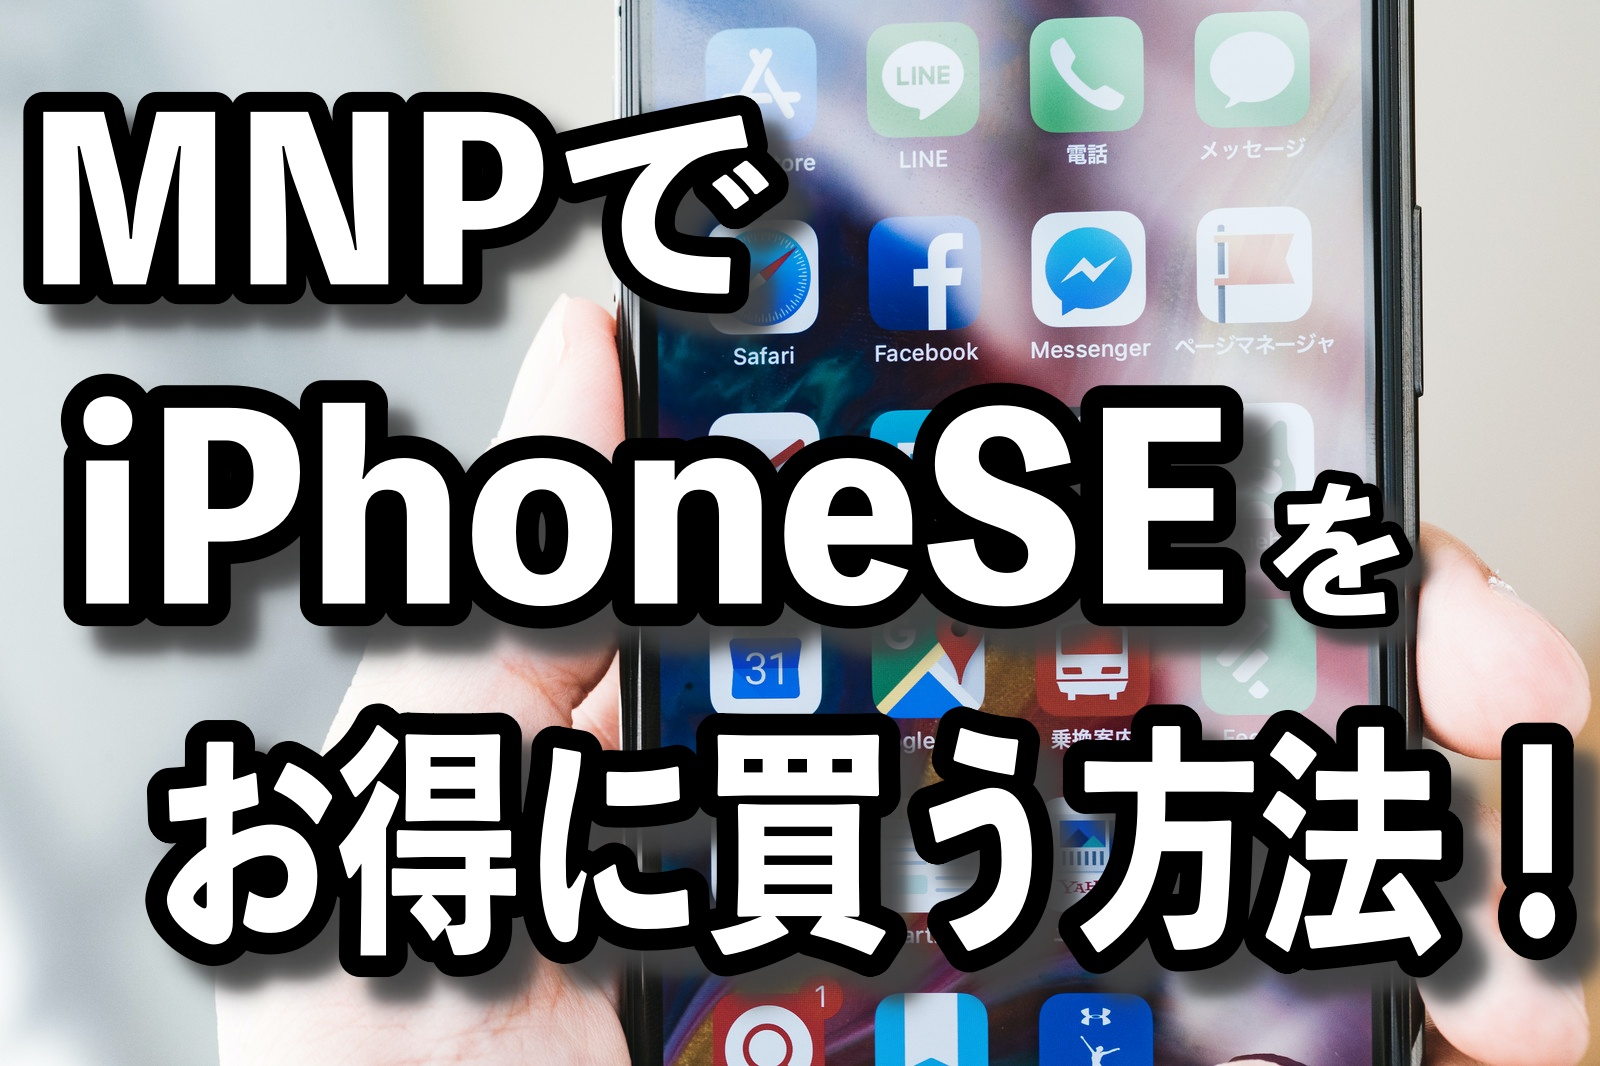 MNPでiPhoneSEをお得に買う方法!